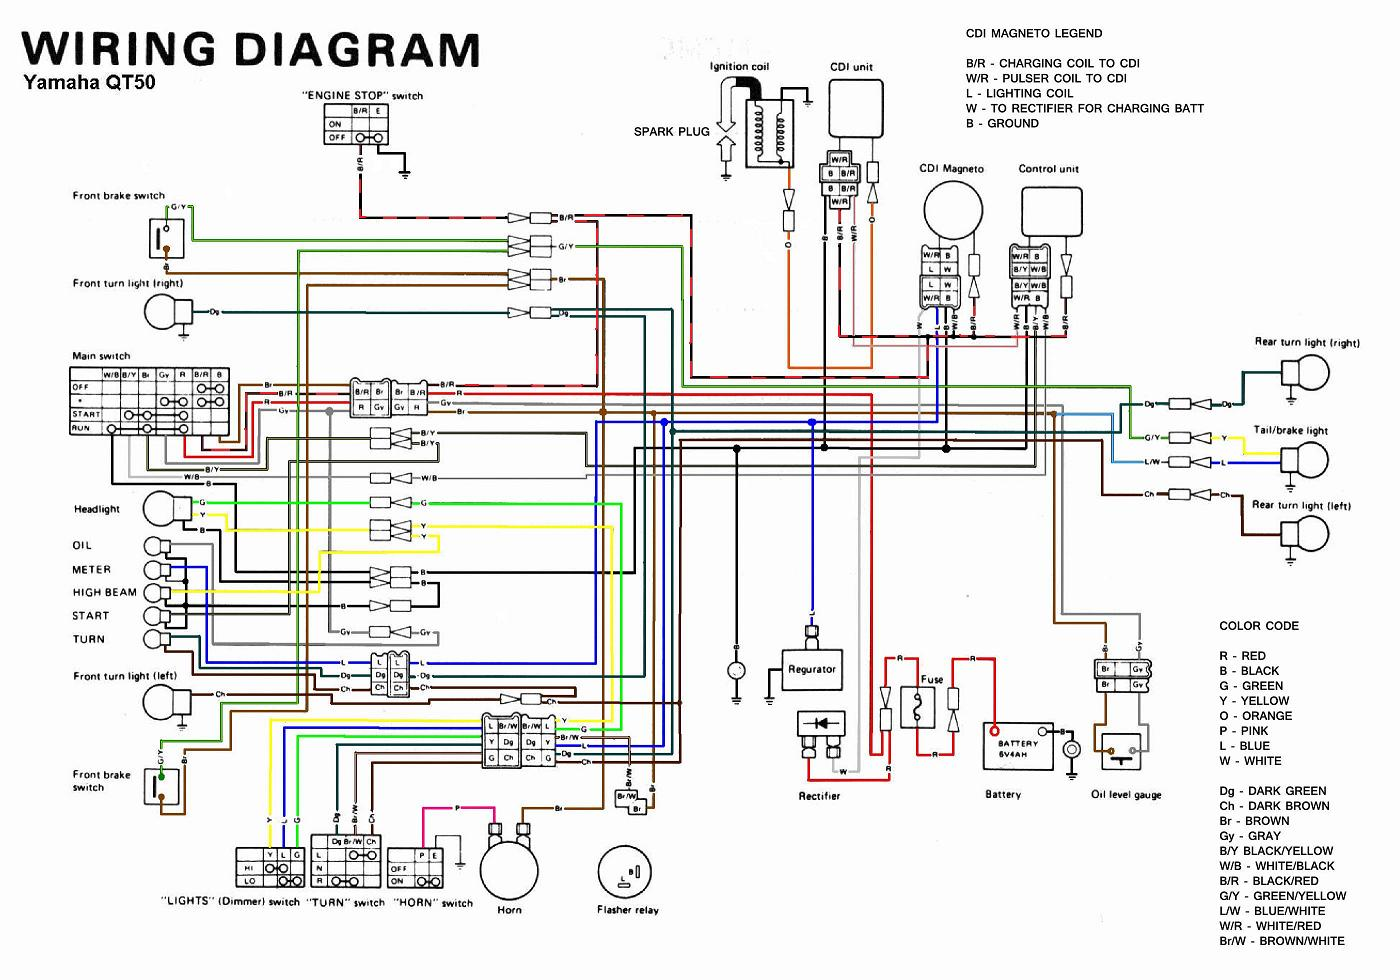 Yamaha QT50 Wiring Diagram yamaha qt50 wiring diagram yamaha qt50 luvin and other nopeds yamaha wiring diagram at readyjetset.co